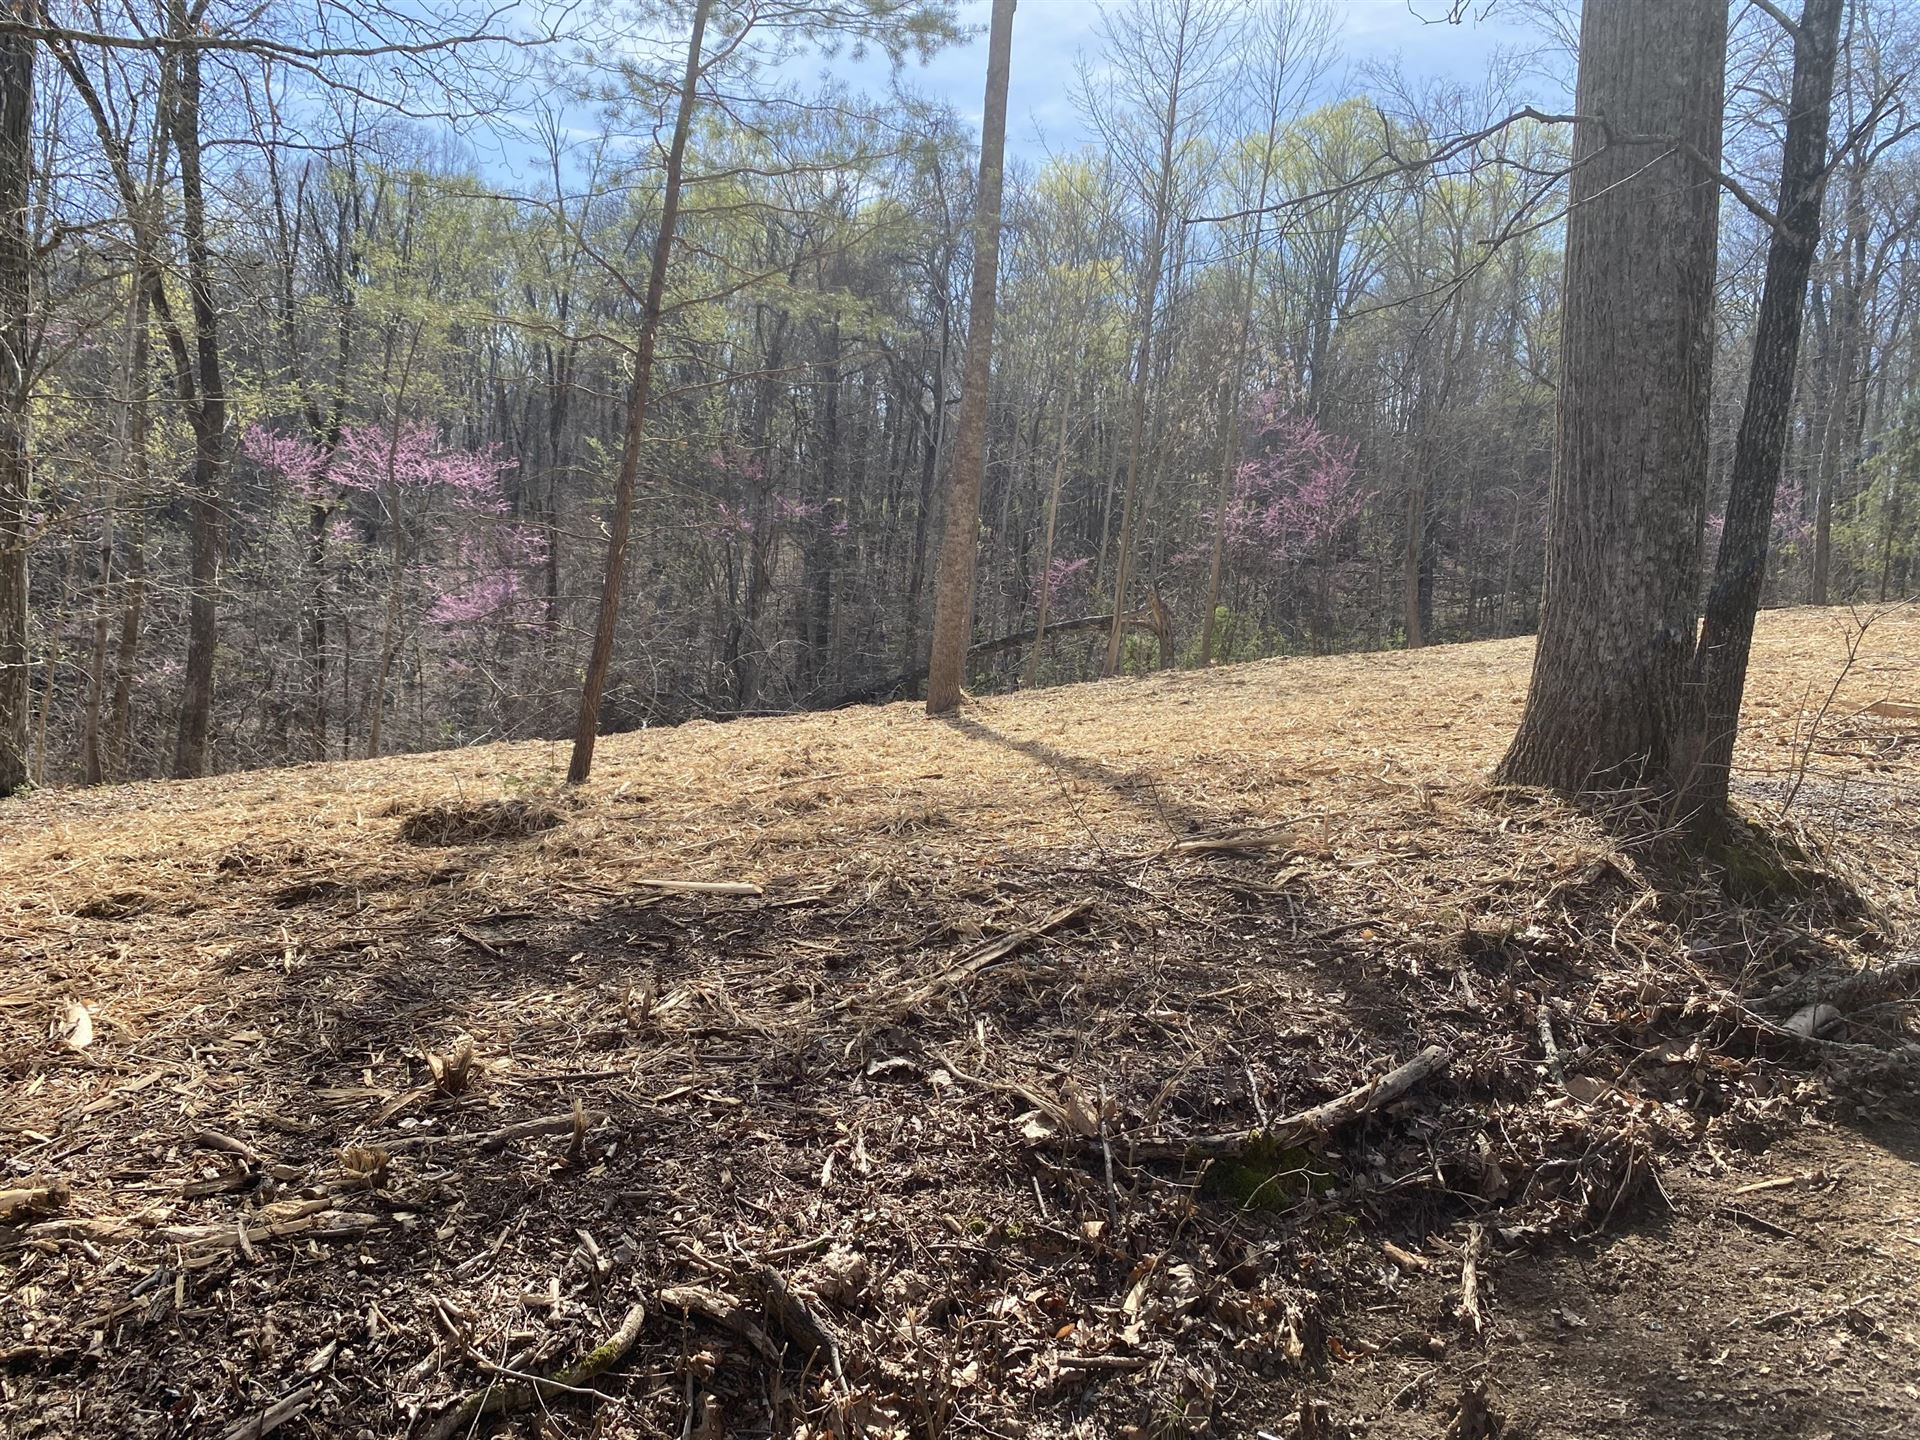 Photo of Lots 6 & 7 Hilltop View Ln, Bean Station, TN 37708 (MLS # 9920983)